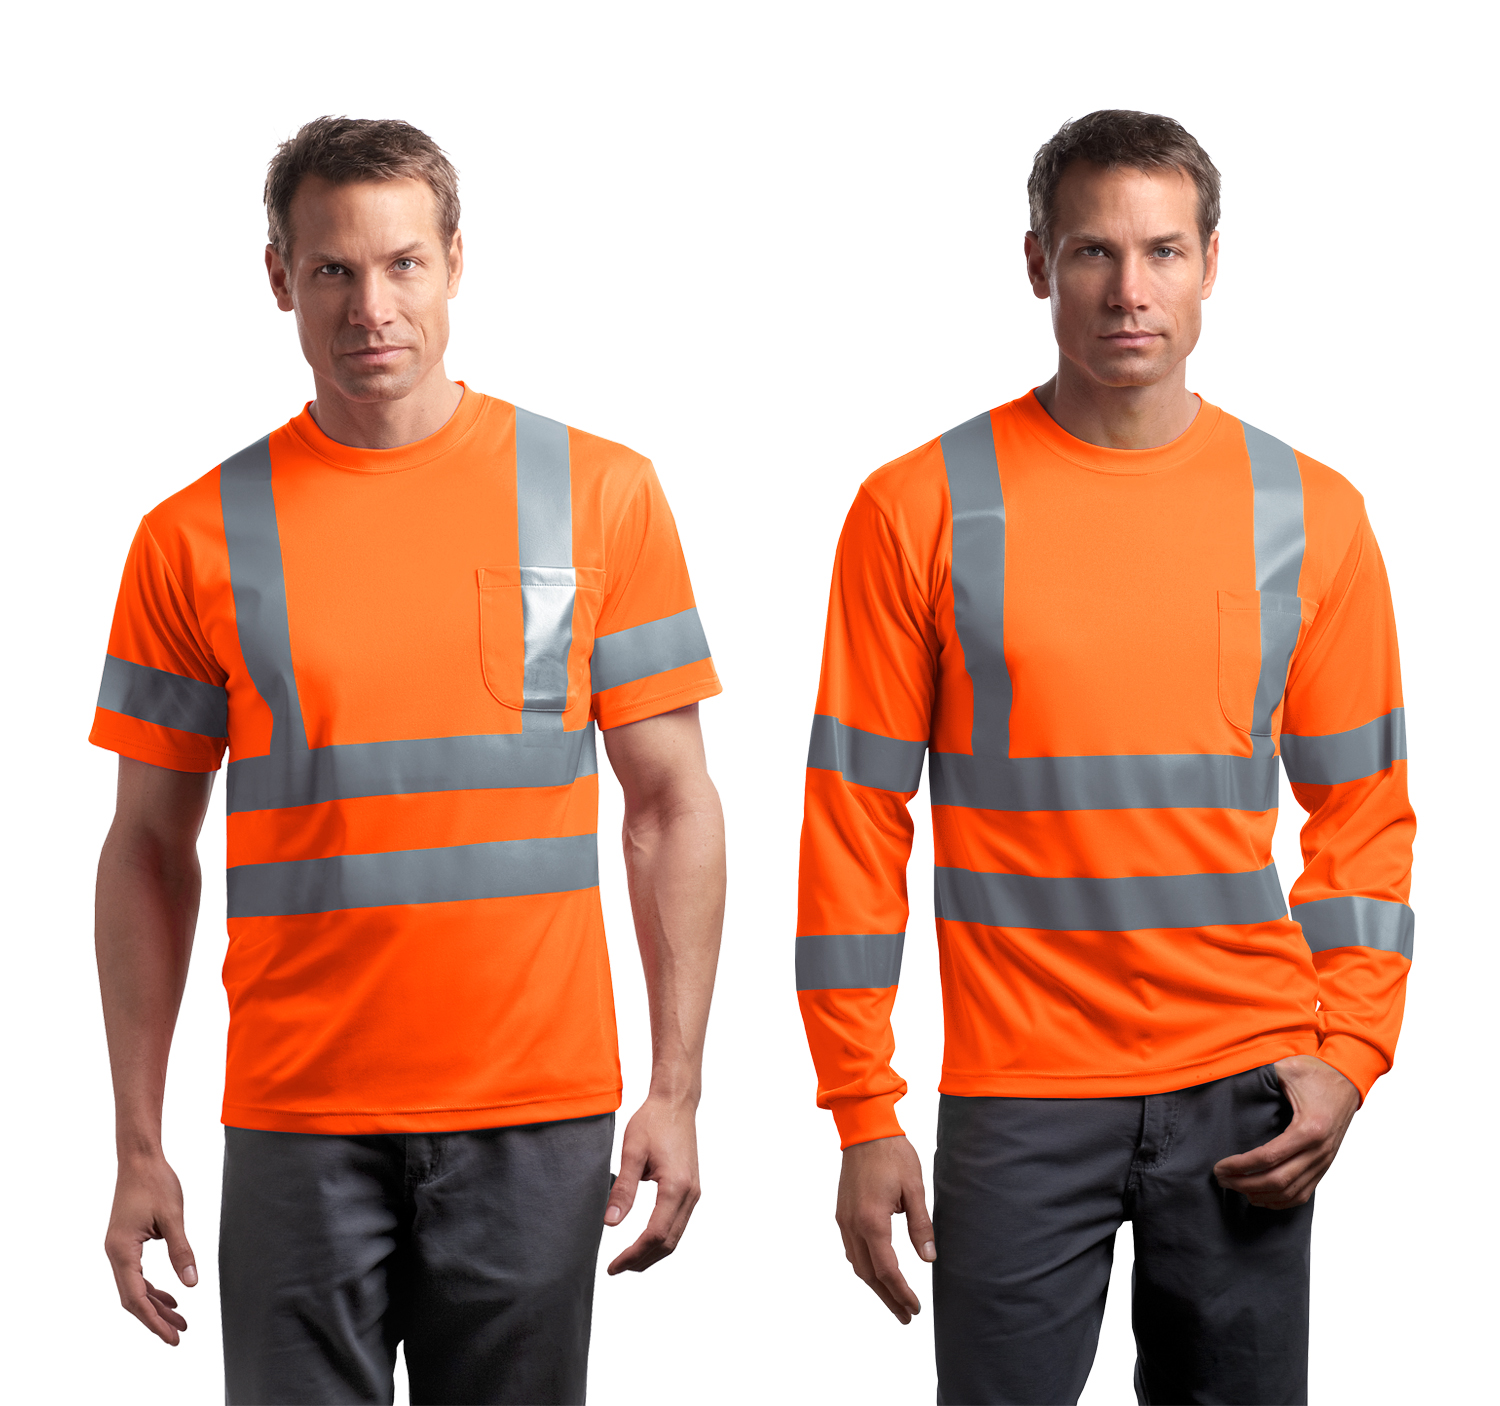 CS409_SafetyOrangeSS_LS